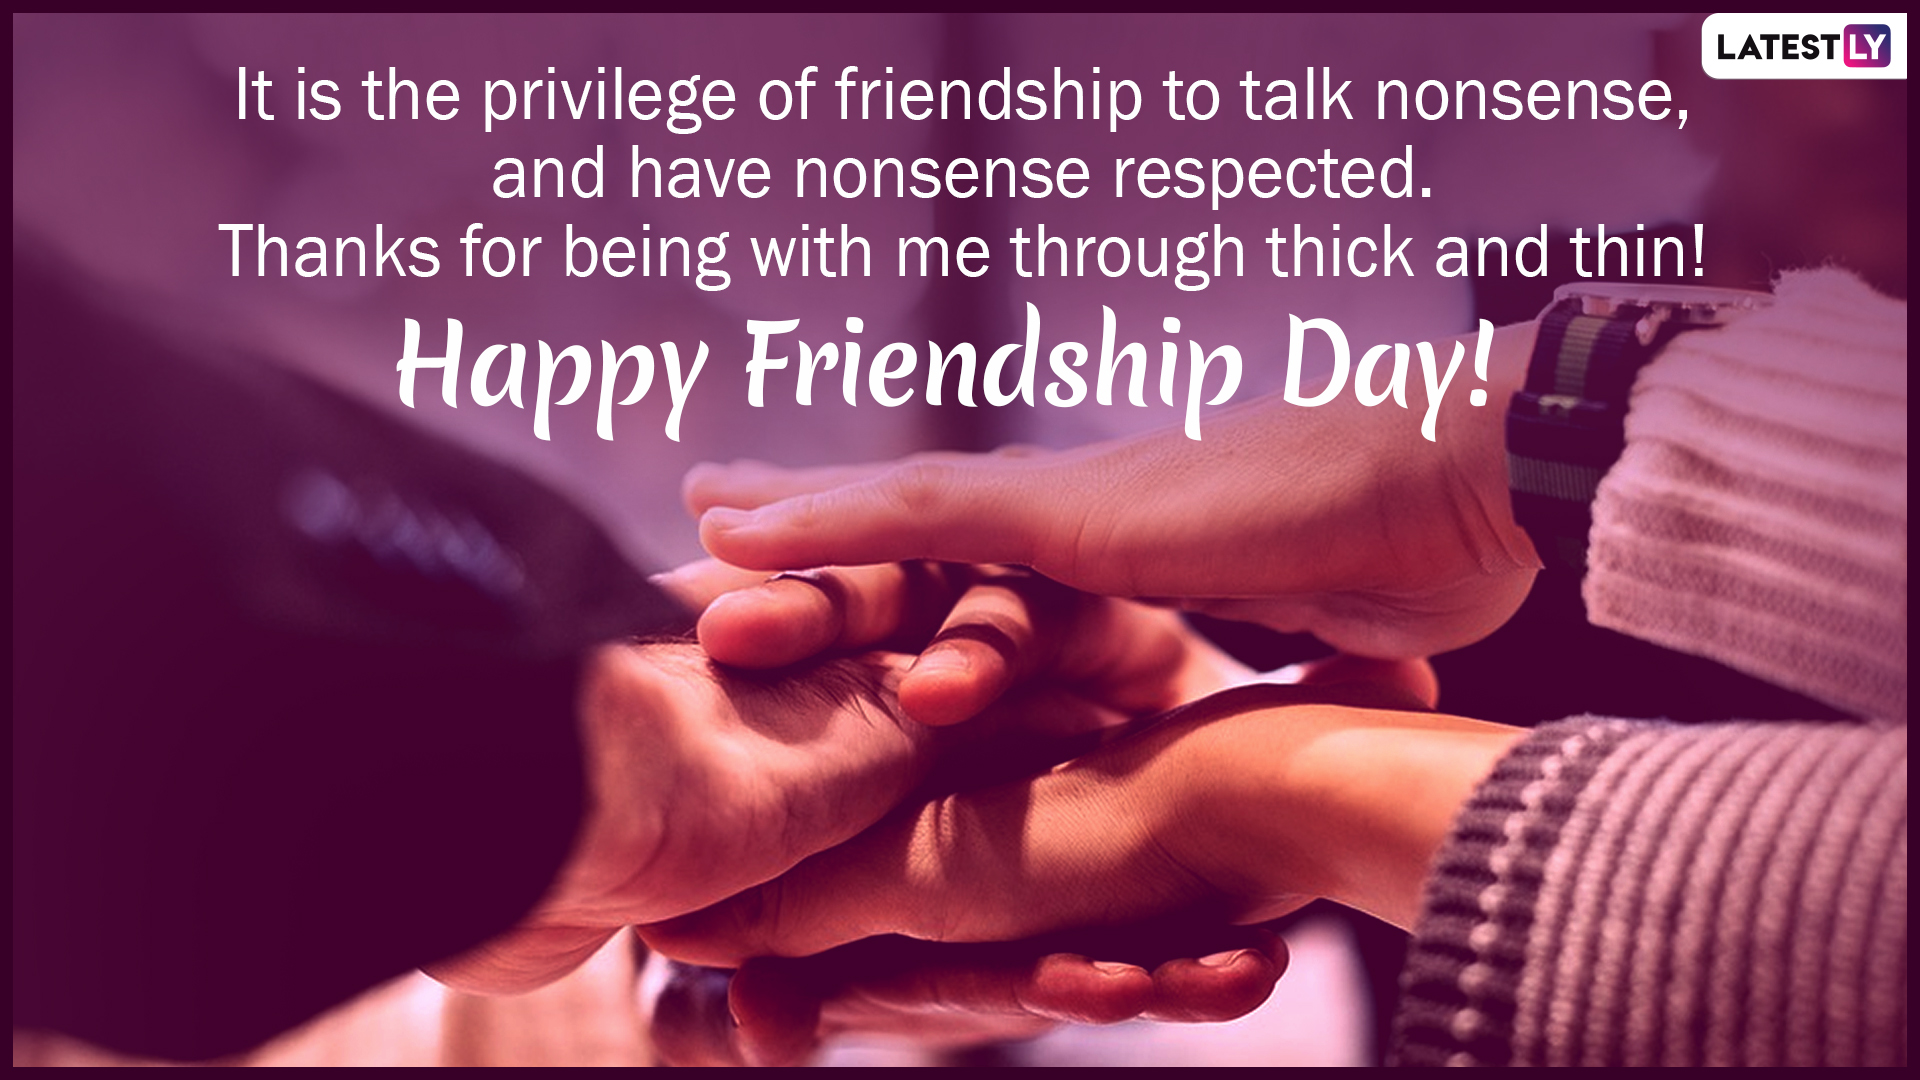 Happy World Friendship Day 2019 Wishes: WhatsApp Stickers, GIF Image